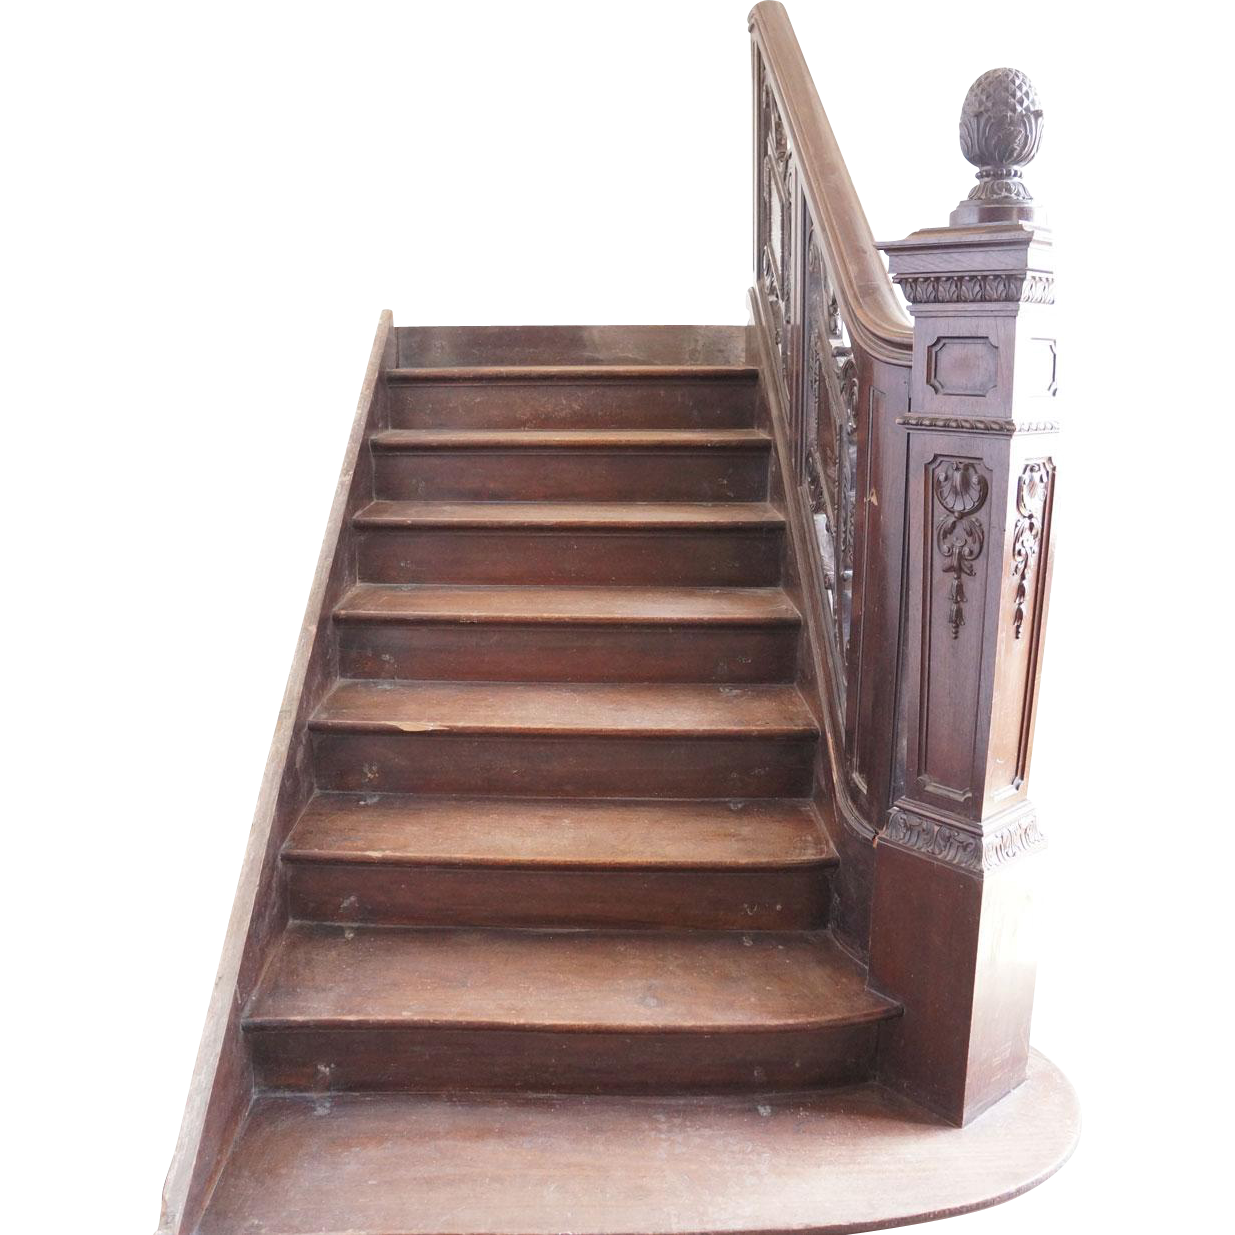 Argentine Baroque Revival Solid Mahogany Staircase